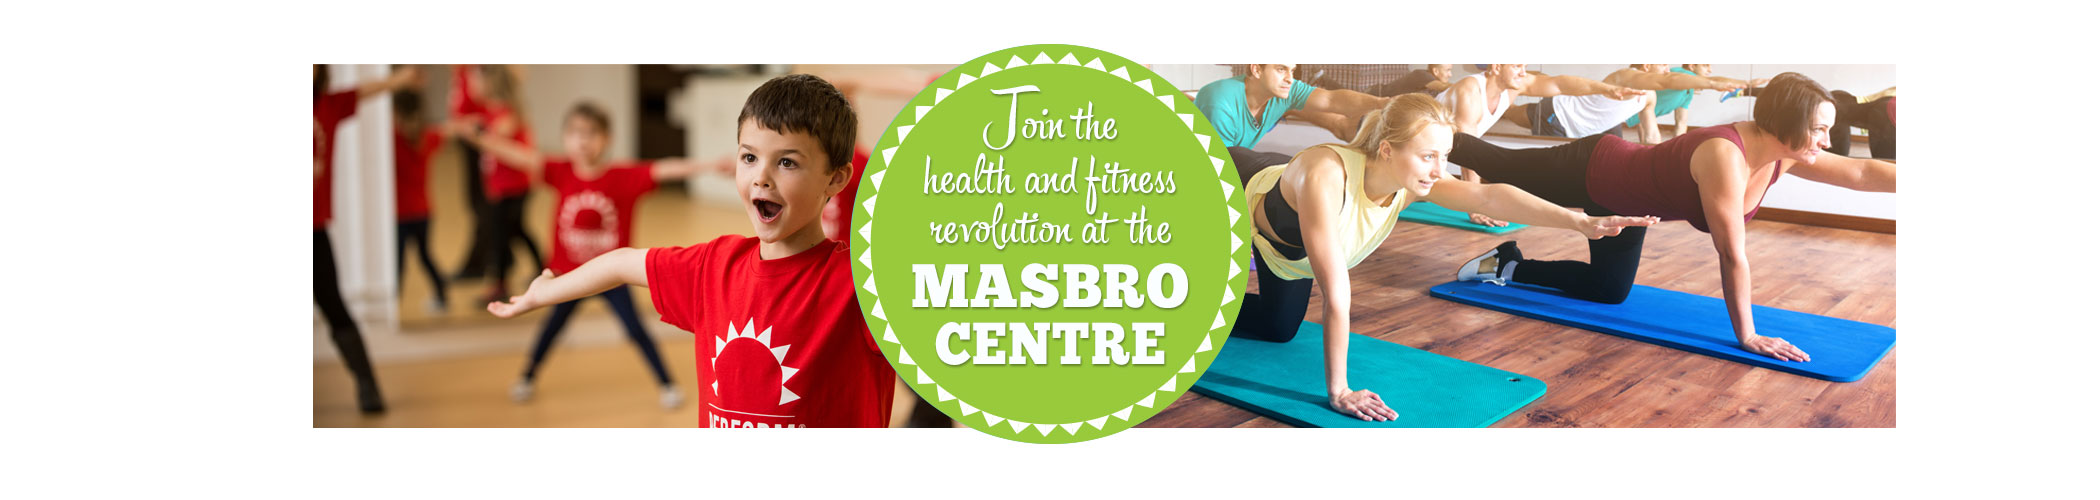 Masbro Health and Fitness page iphone banner